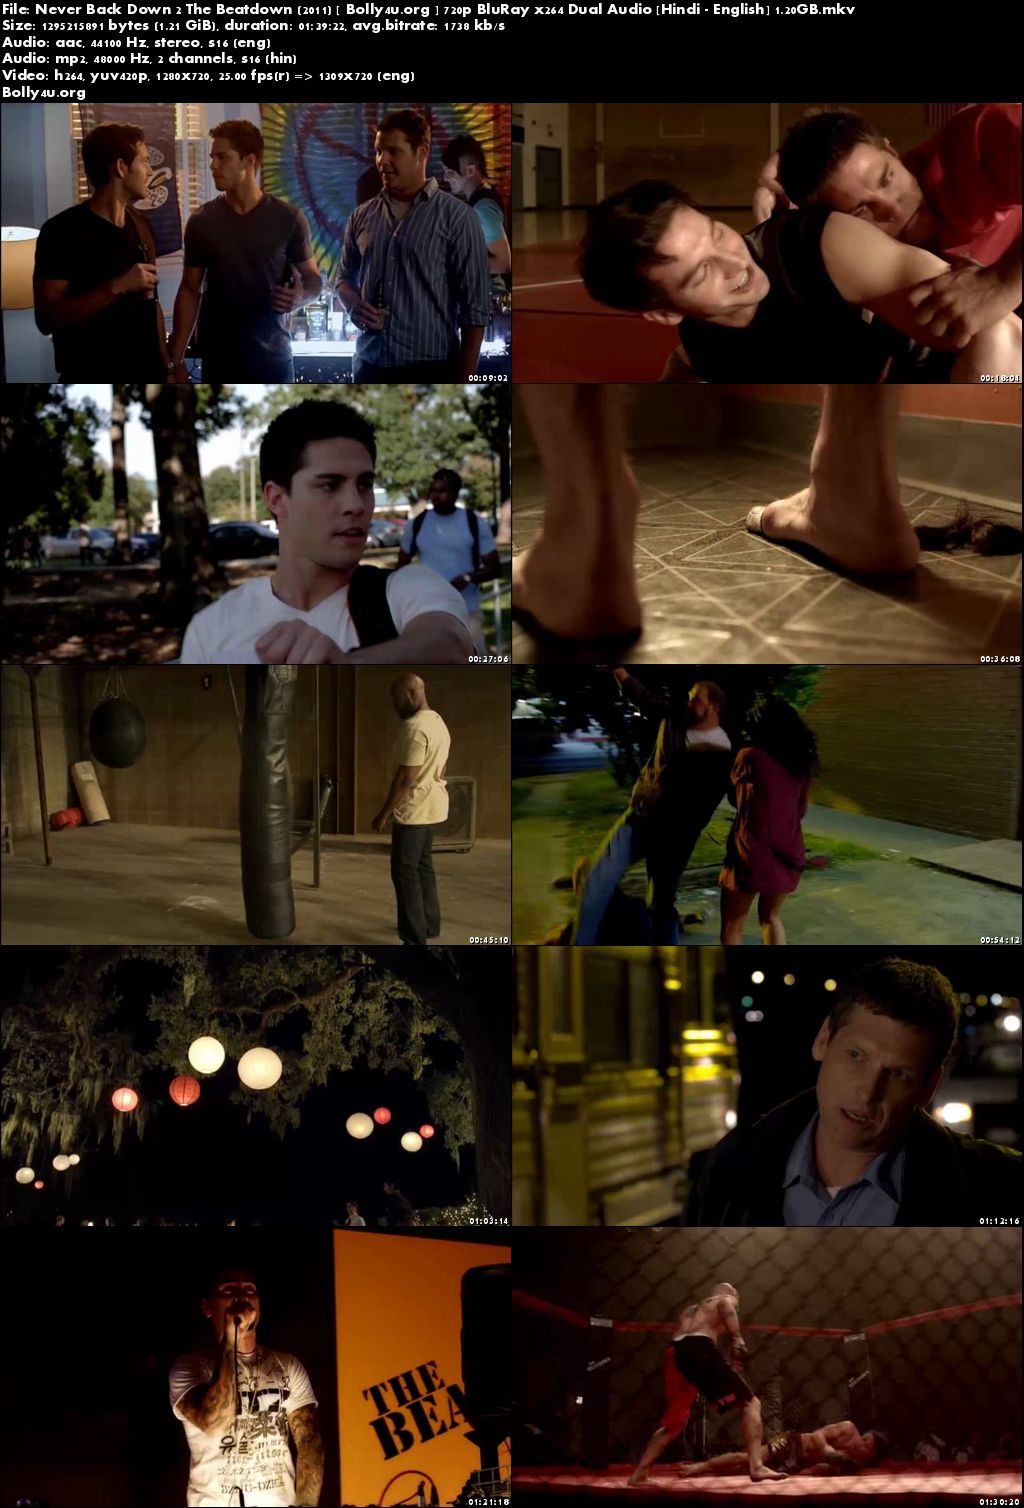 Never Back Down 2 The Beatdown 2011 BRRip 300MB Hindi Dual Audio 480p Download